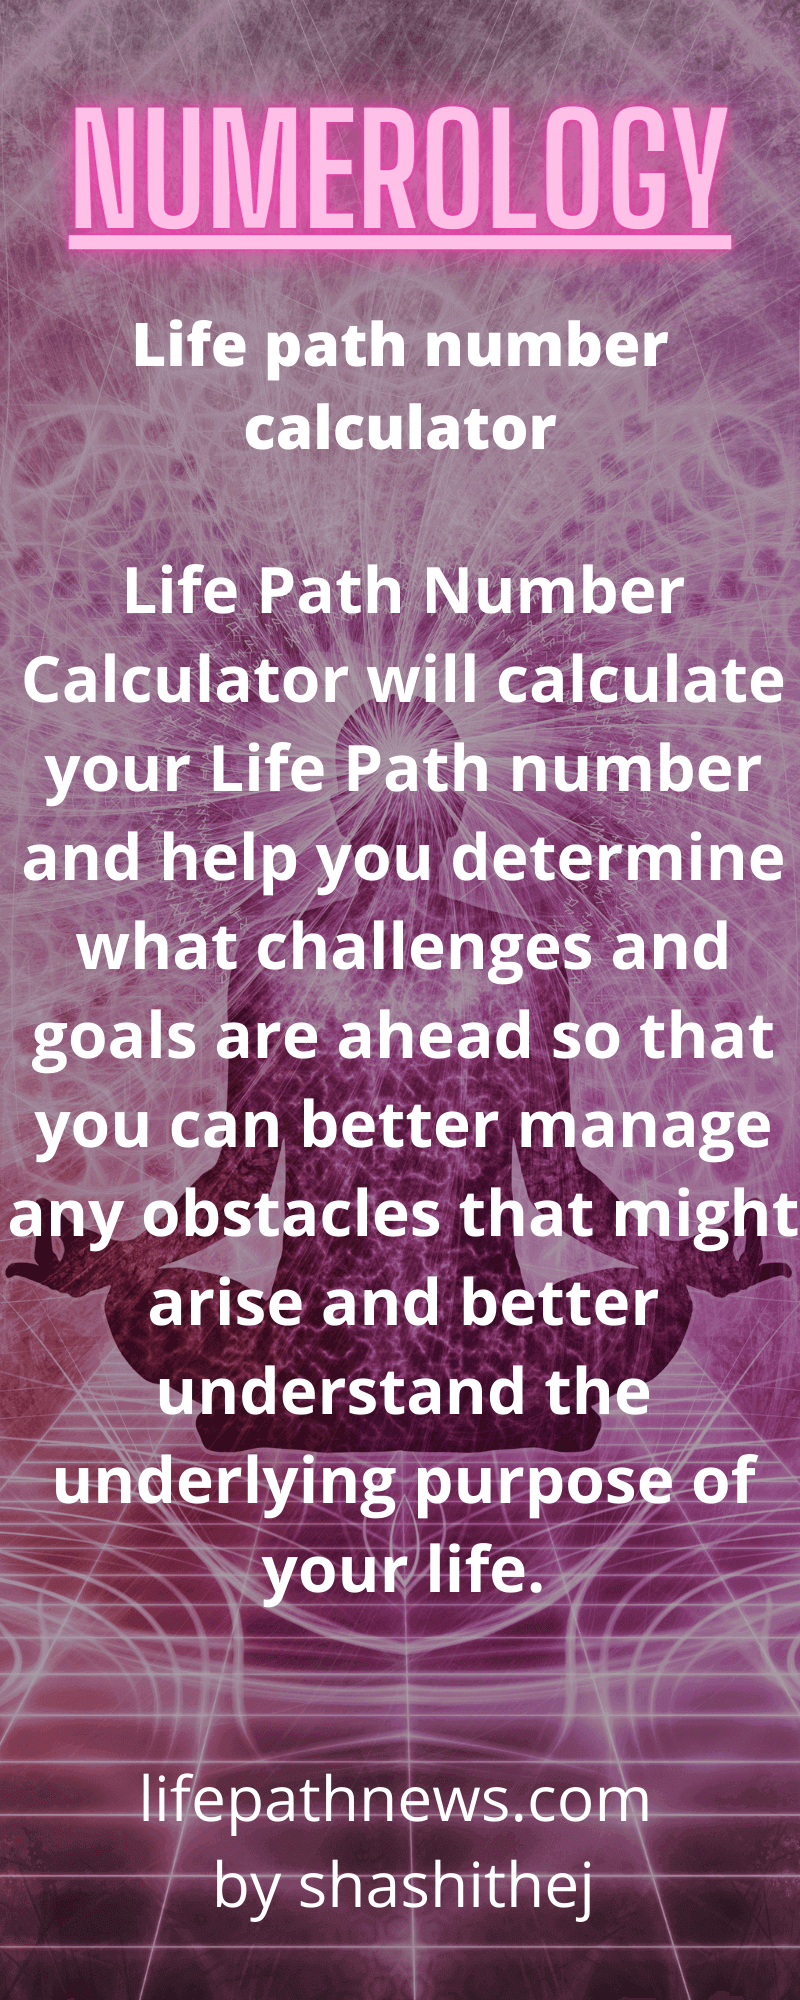 Numerology life path number calculator